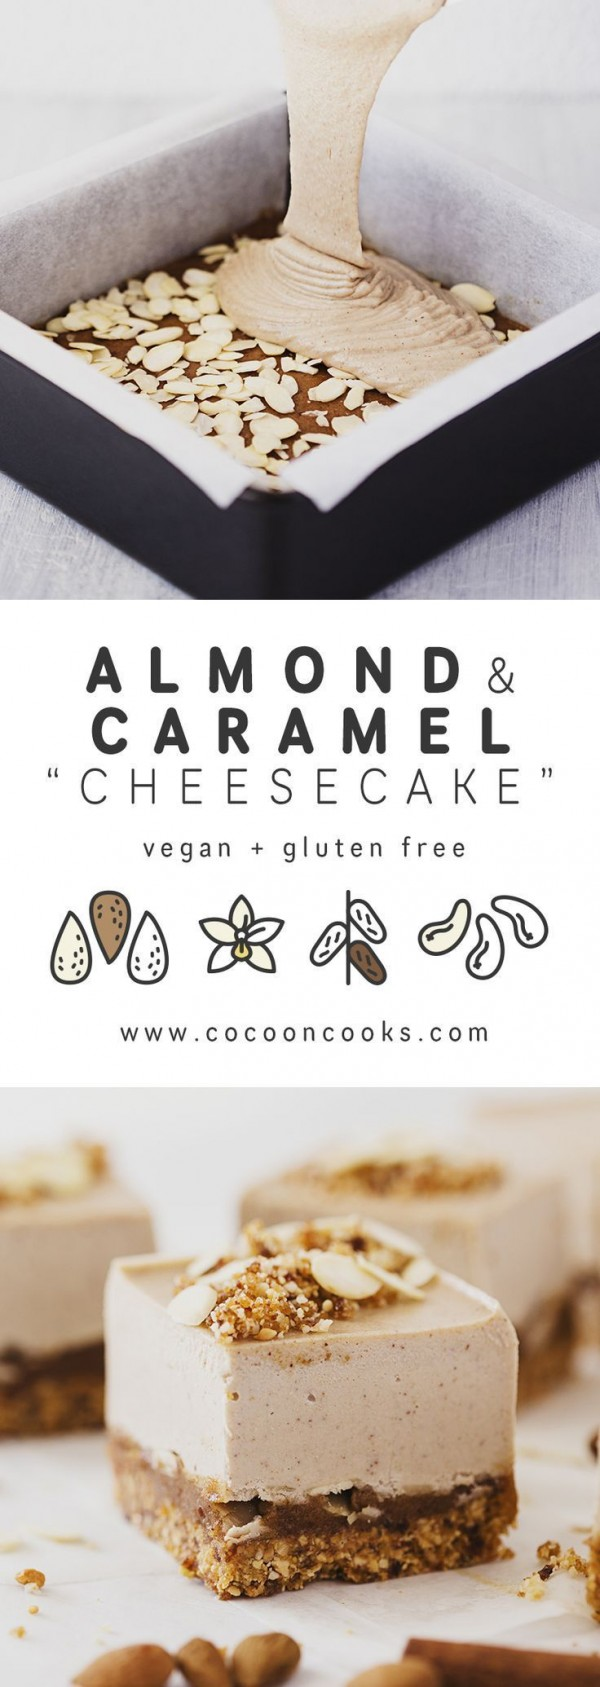 Get the recipe Almond and Caramel Cheesecake @recipes_to_go